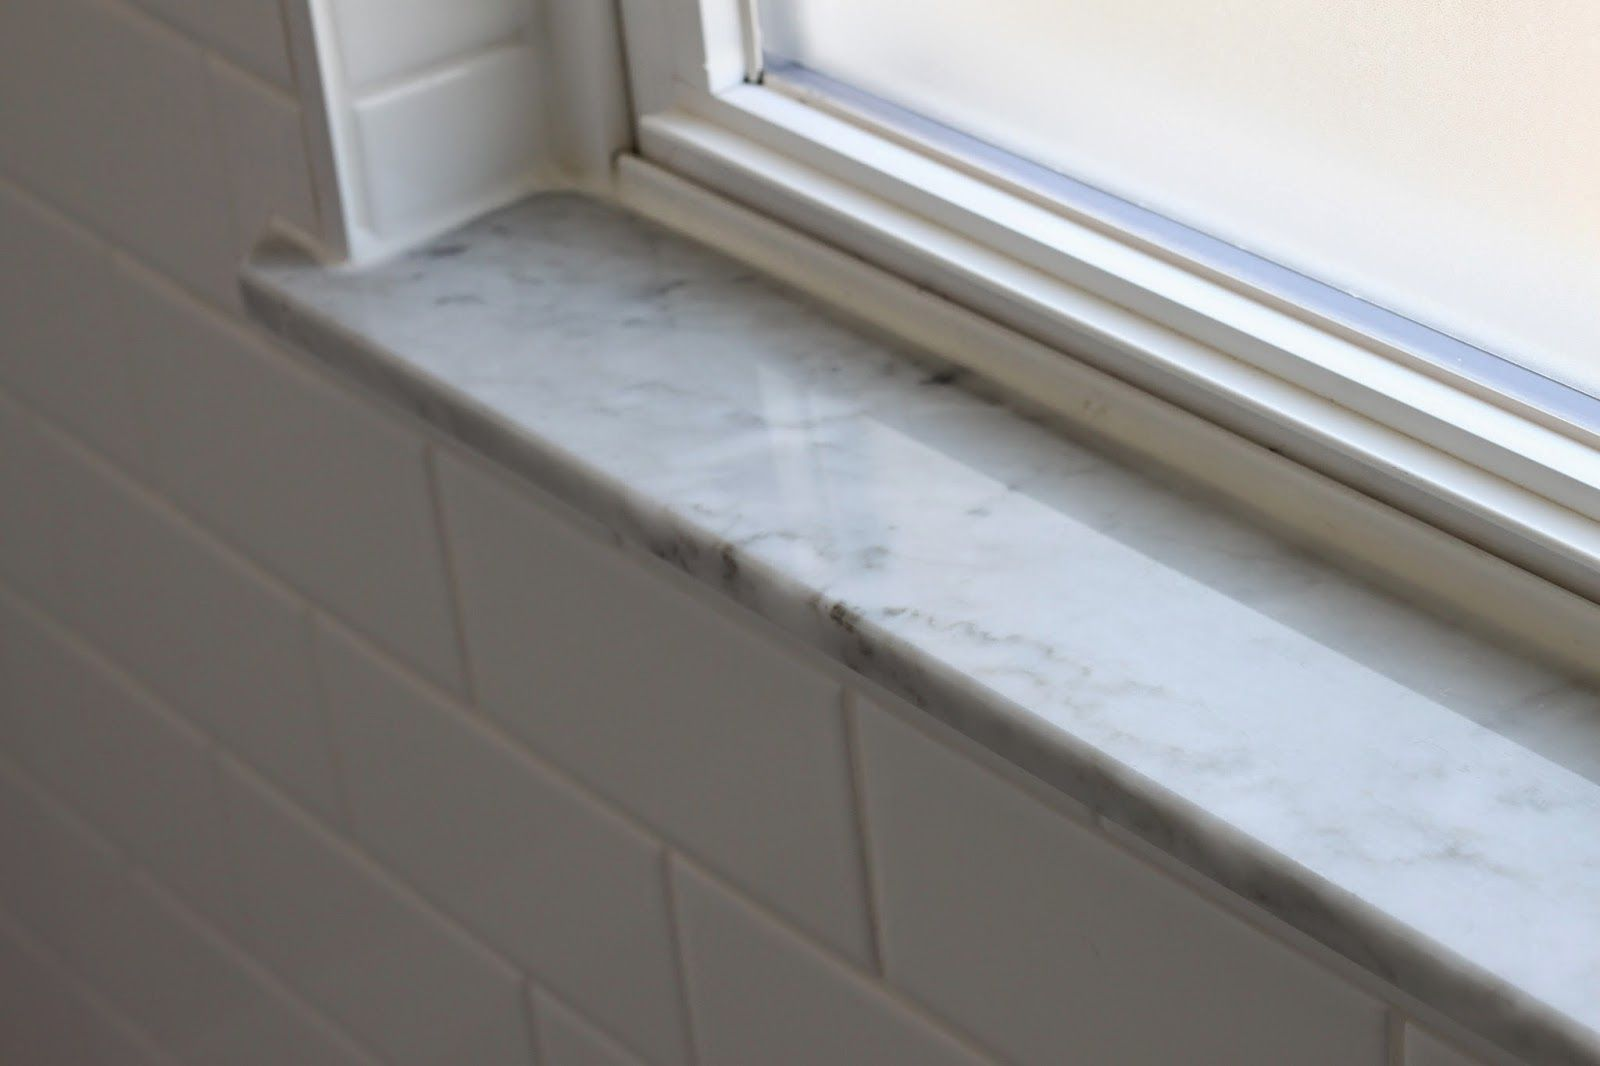 Shower with window ideas  in shower window sill we need a shower window that doesnut have wood